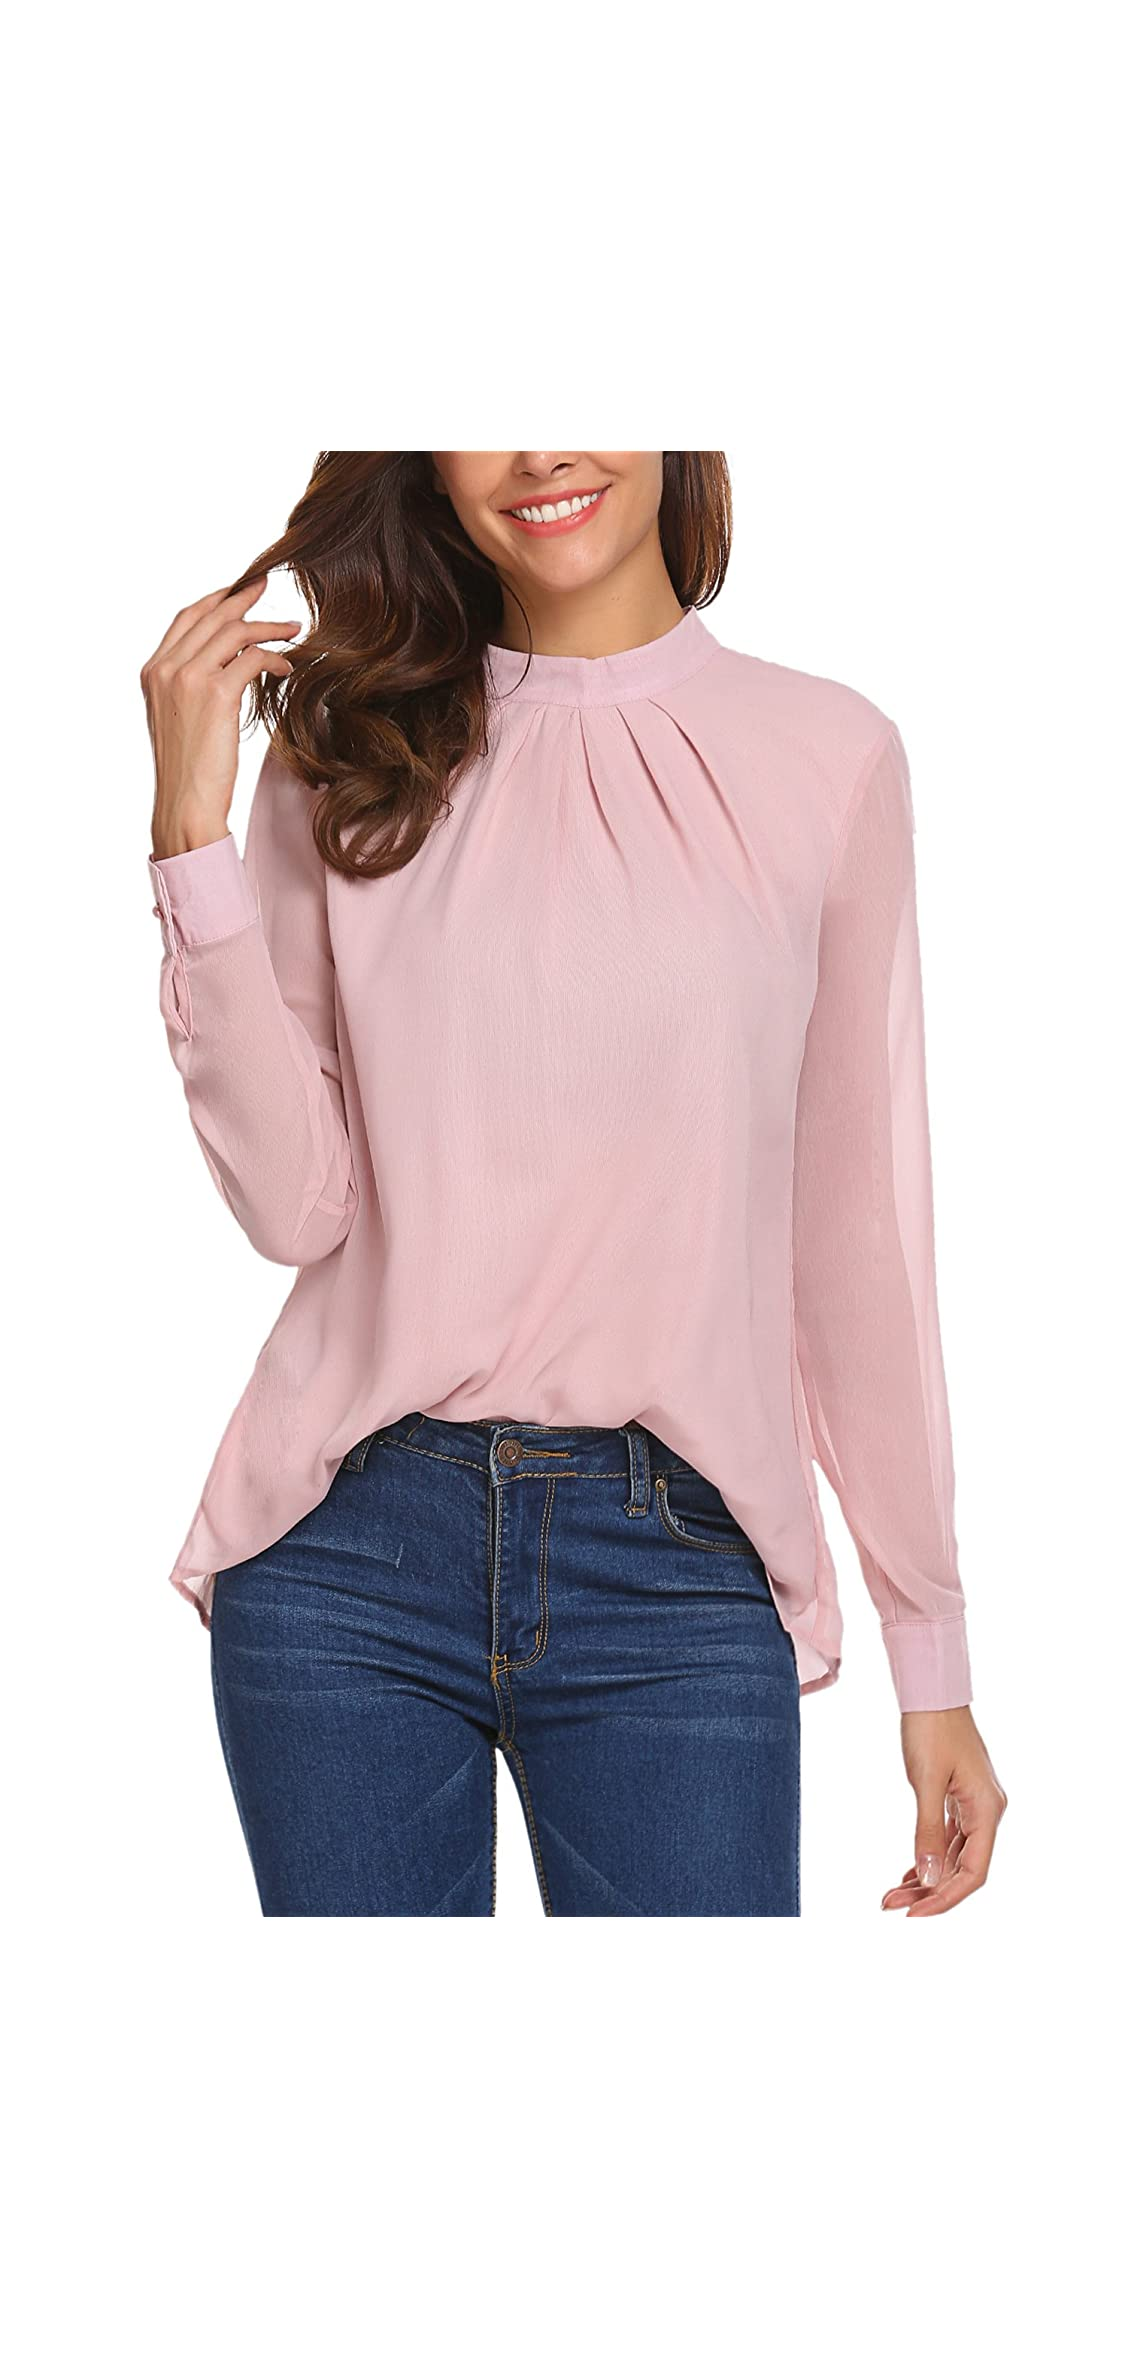 Long Sleeve Chiffon Blouse Women's Loose Casual Cuffed